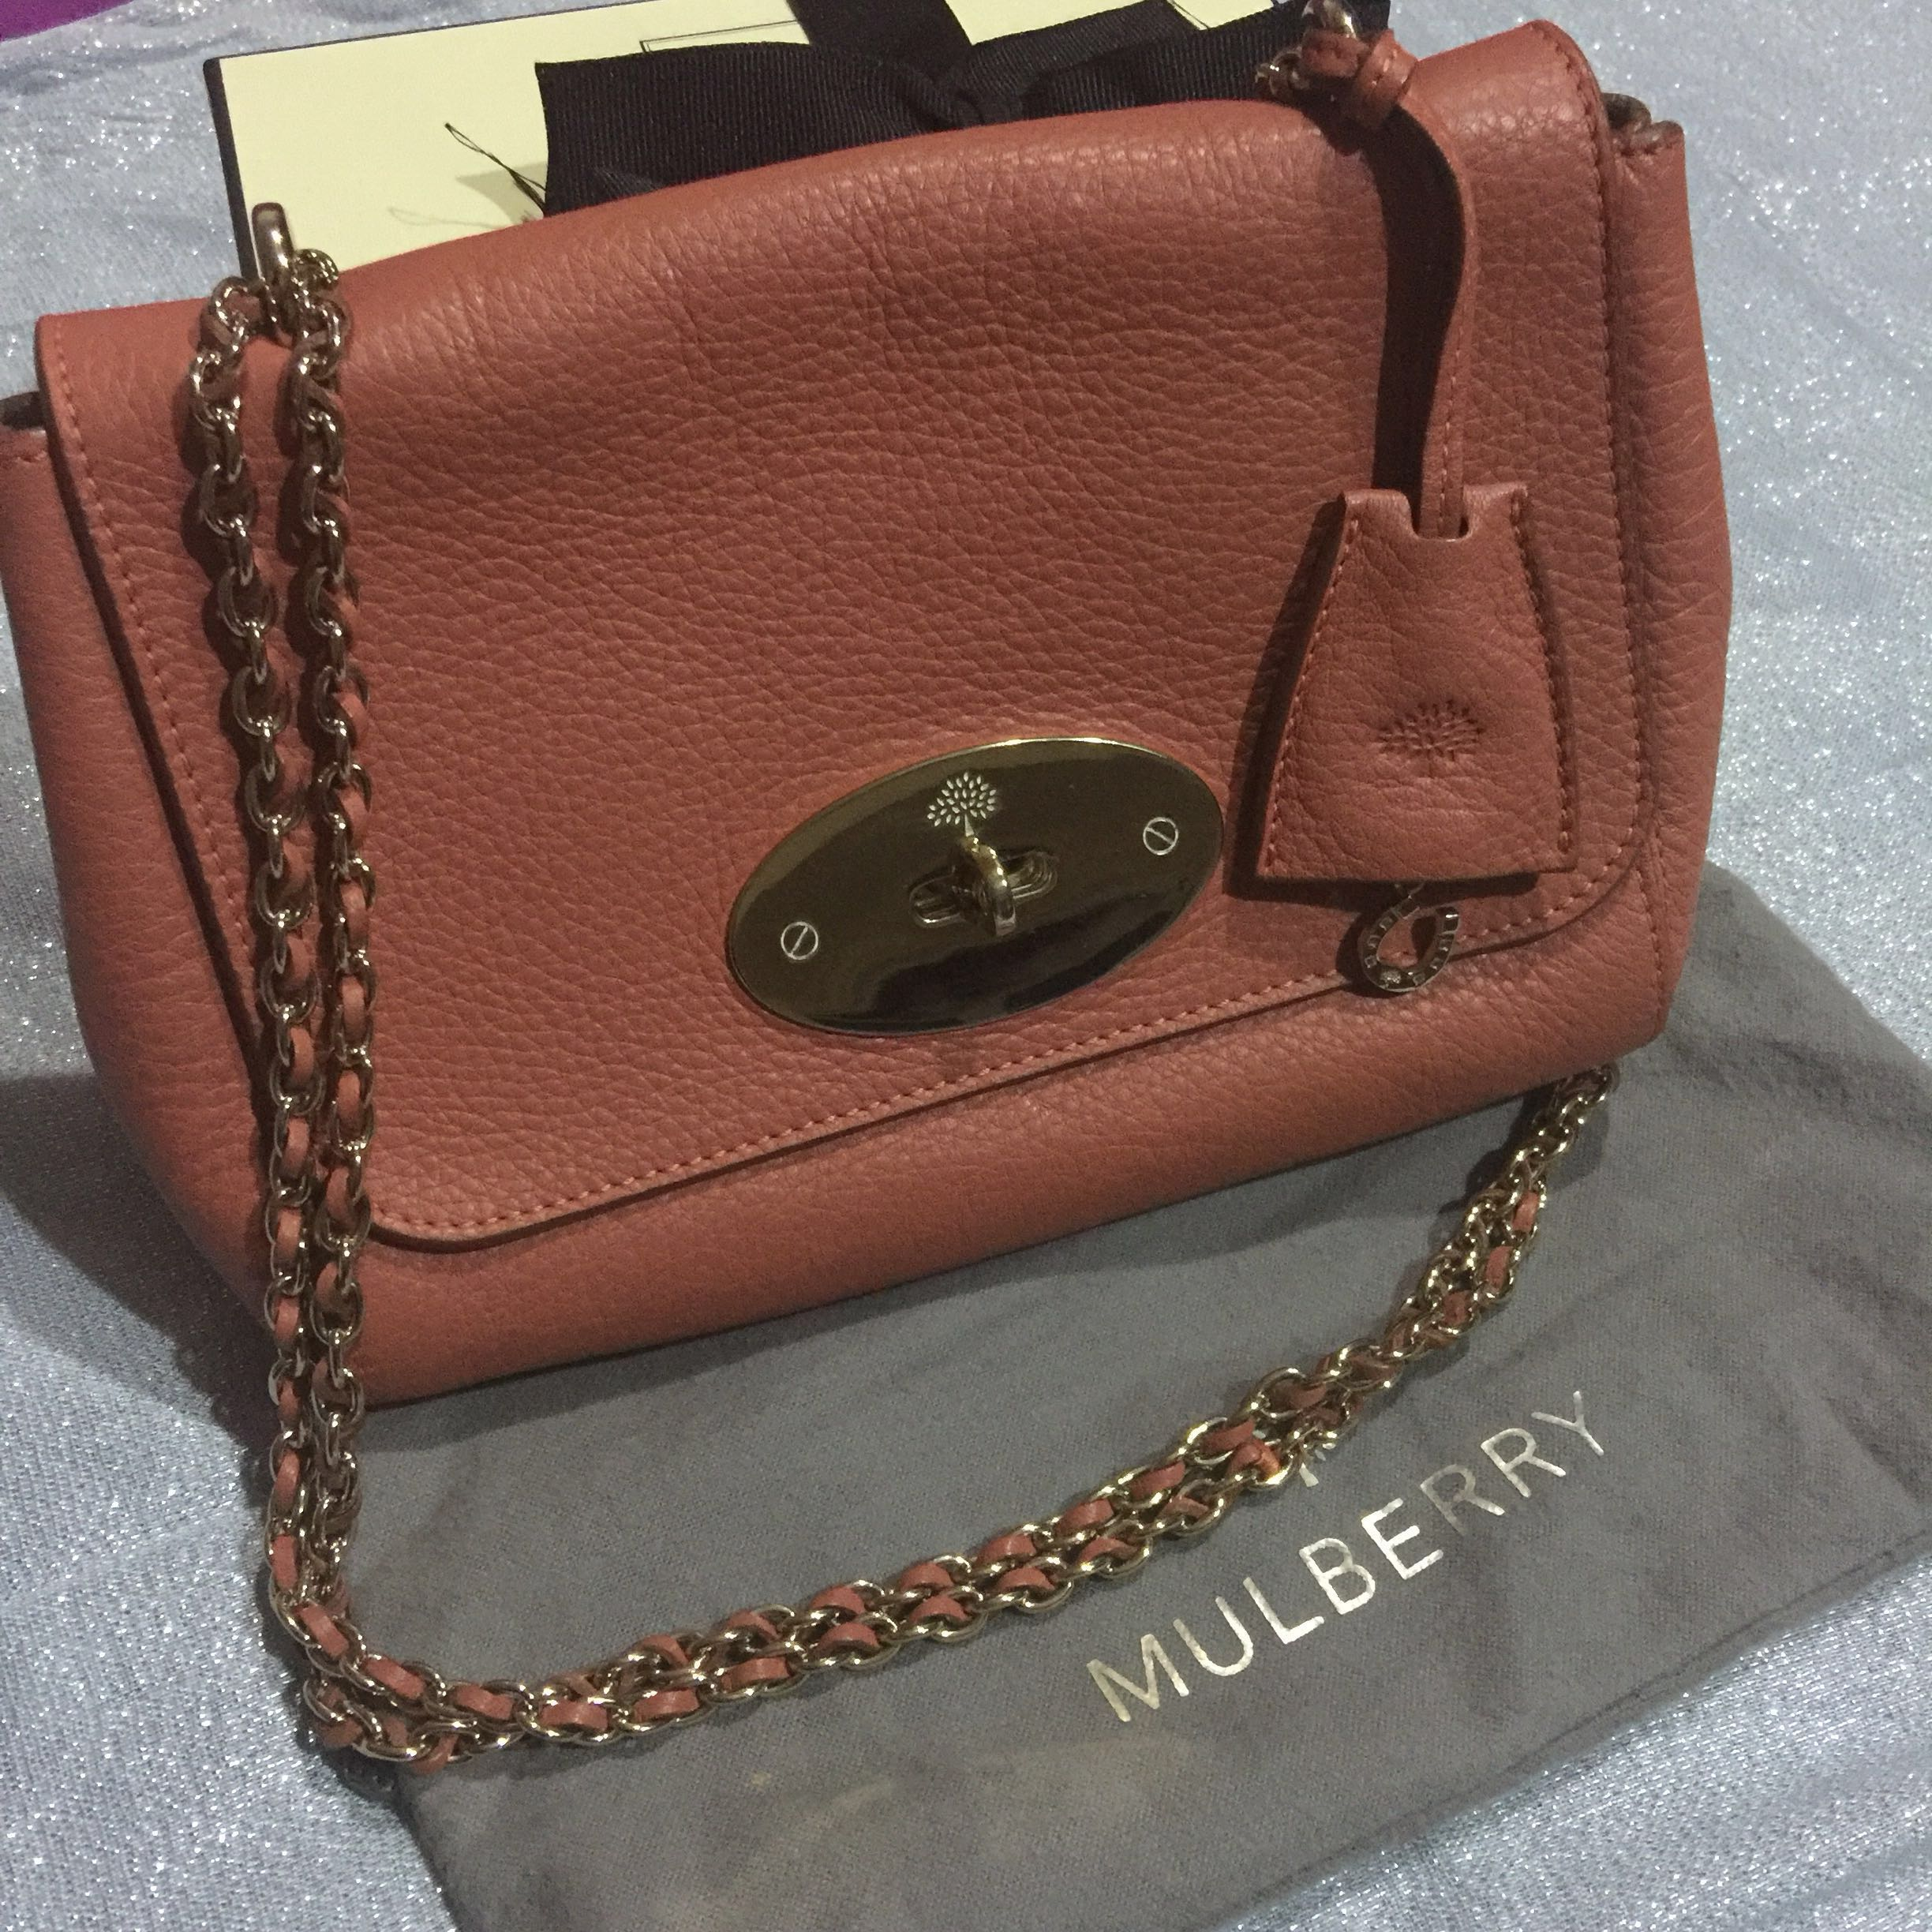 faf43b2a0d ... france pl authentic mulberry lily medium sling bag luxury bags wallets  sling bags on carousell f73f2